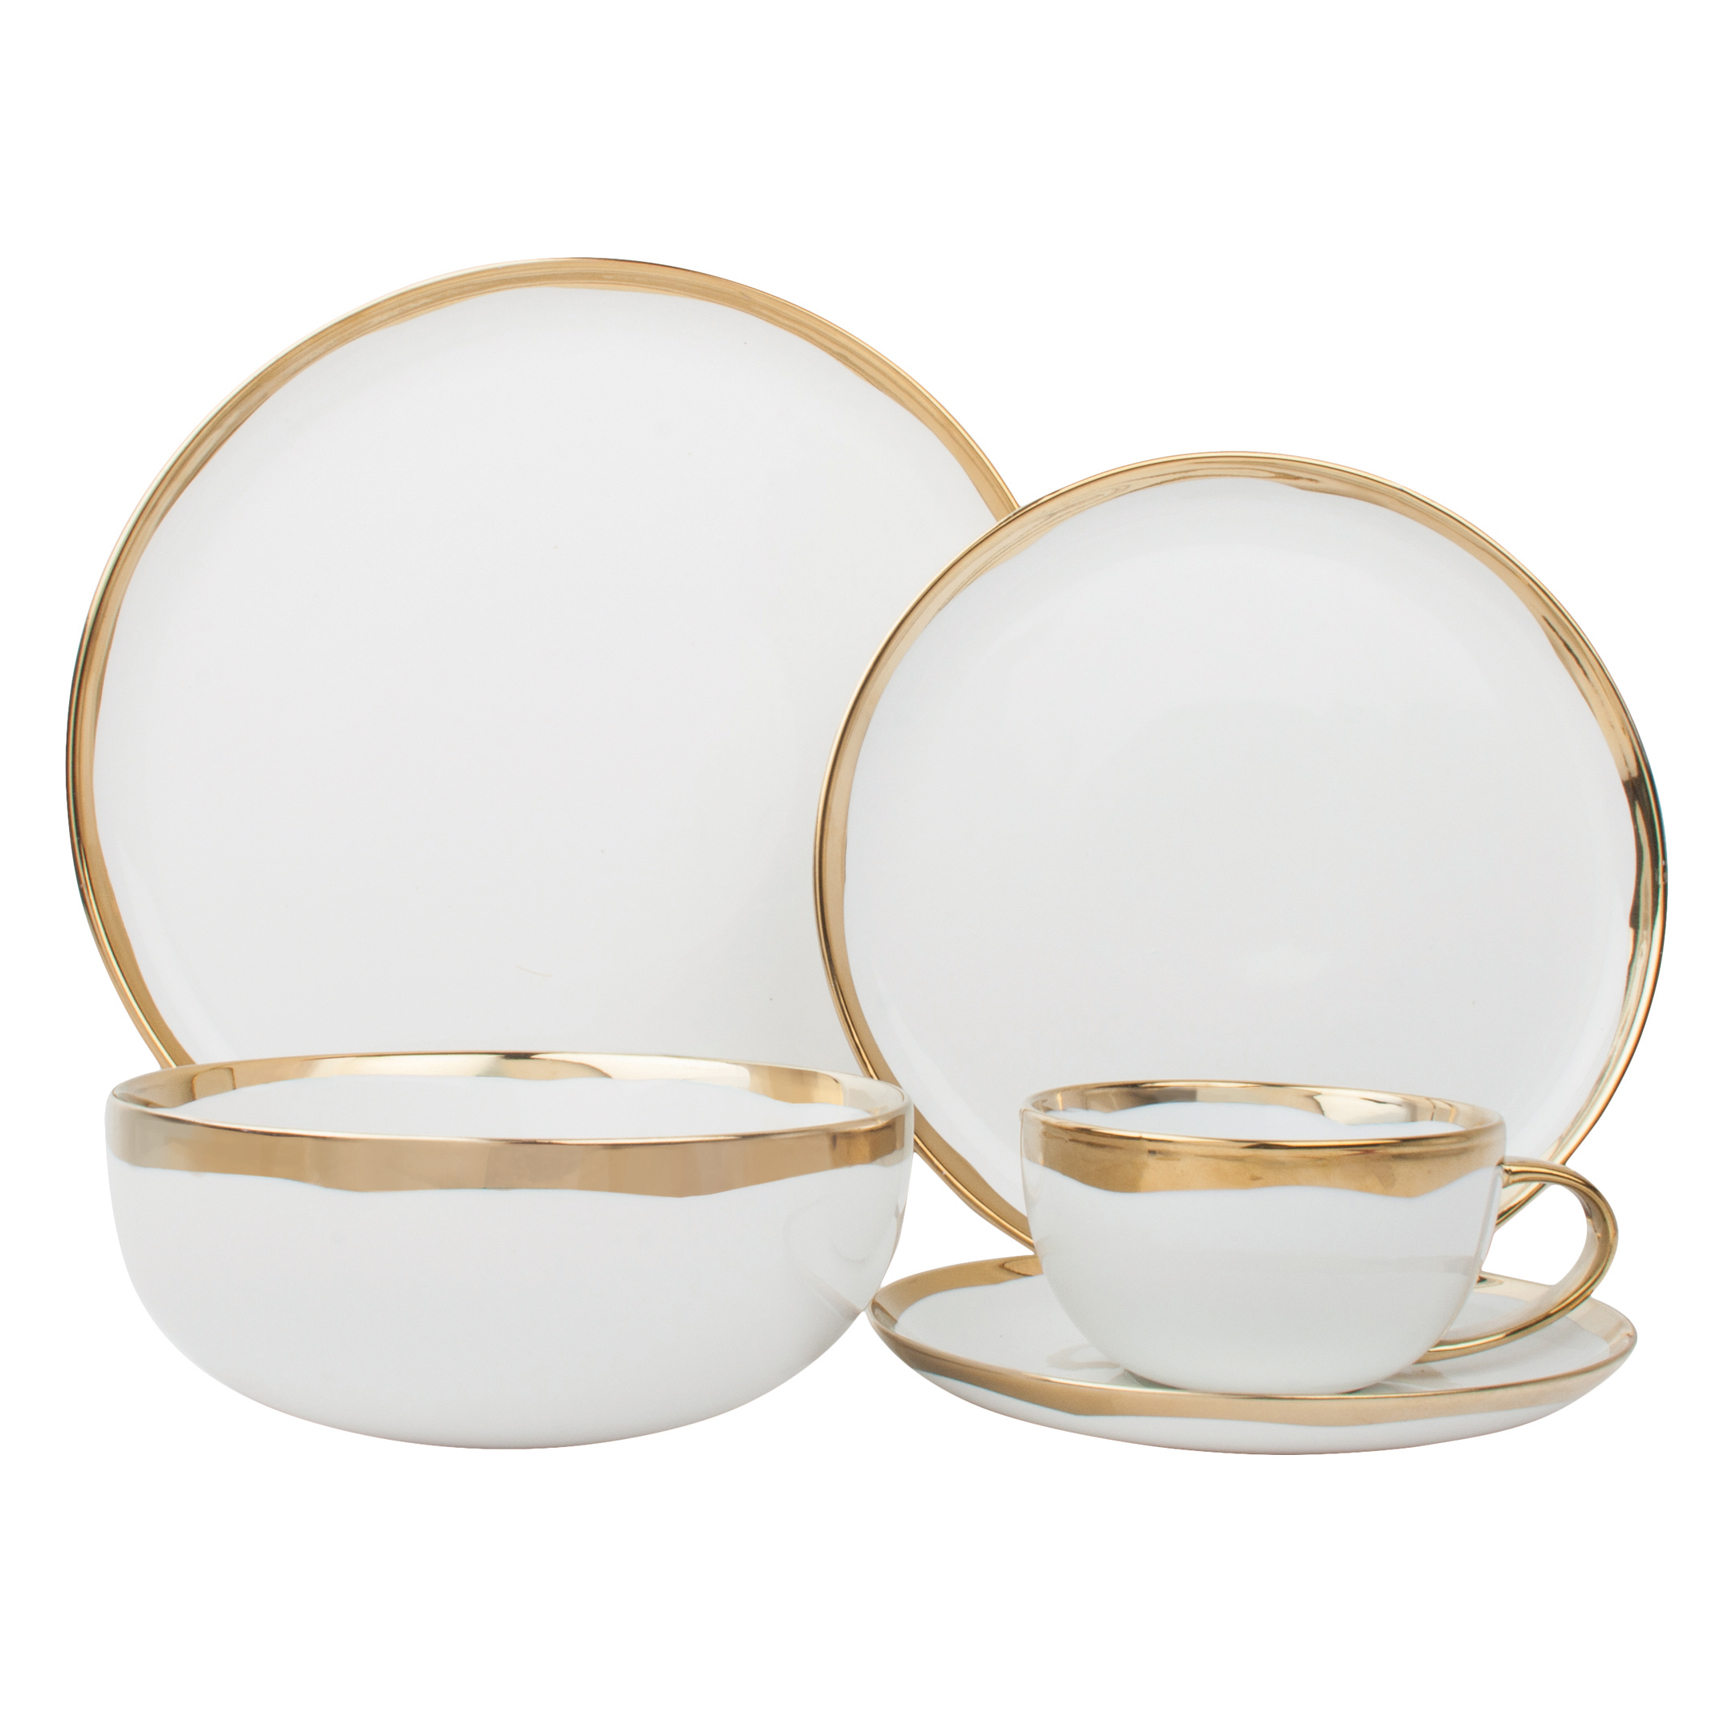 Dauville Regency Gold Trim Dining Set - 5 piece  sc 1 st  Kathy Kuo Home & Dinnerware Collections | Kathy Kuo Home